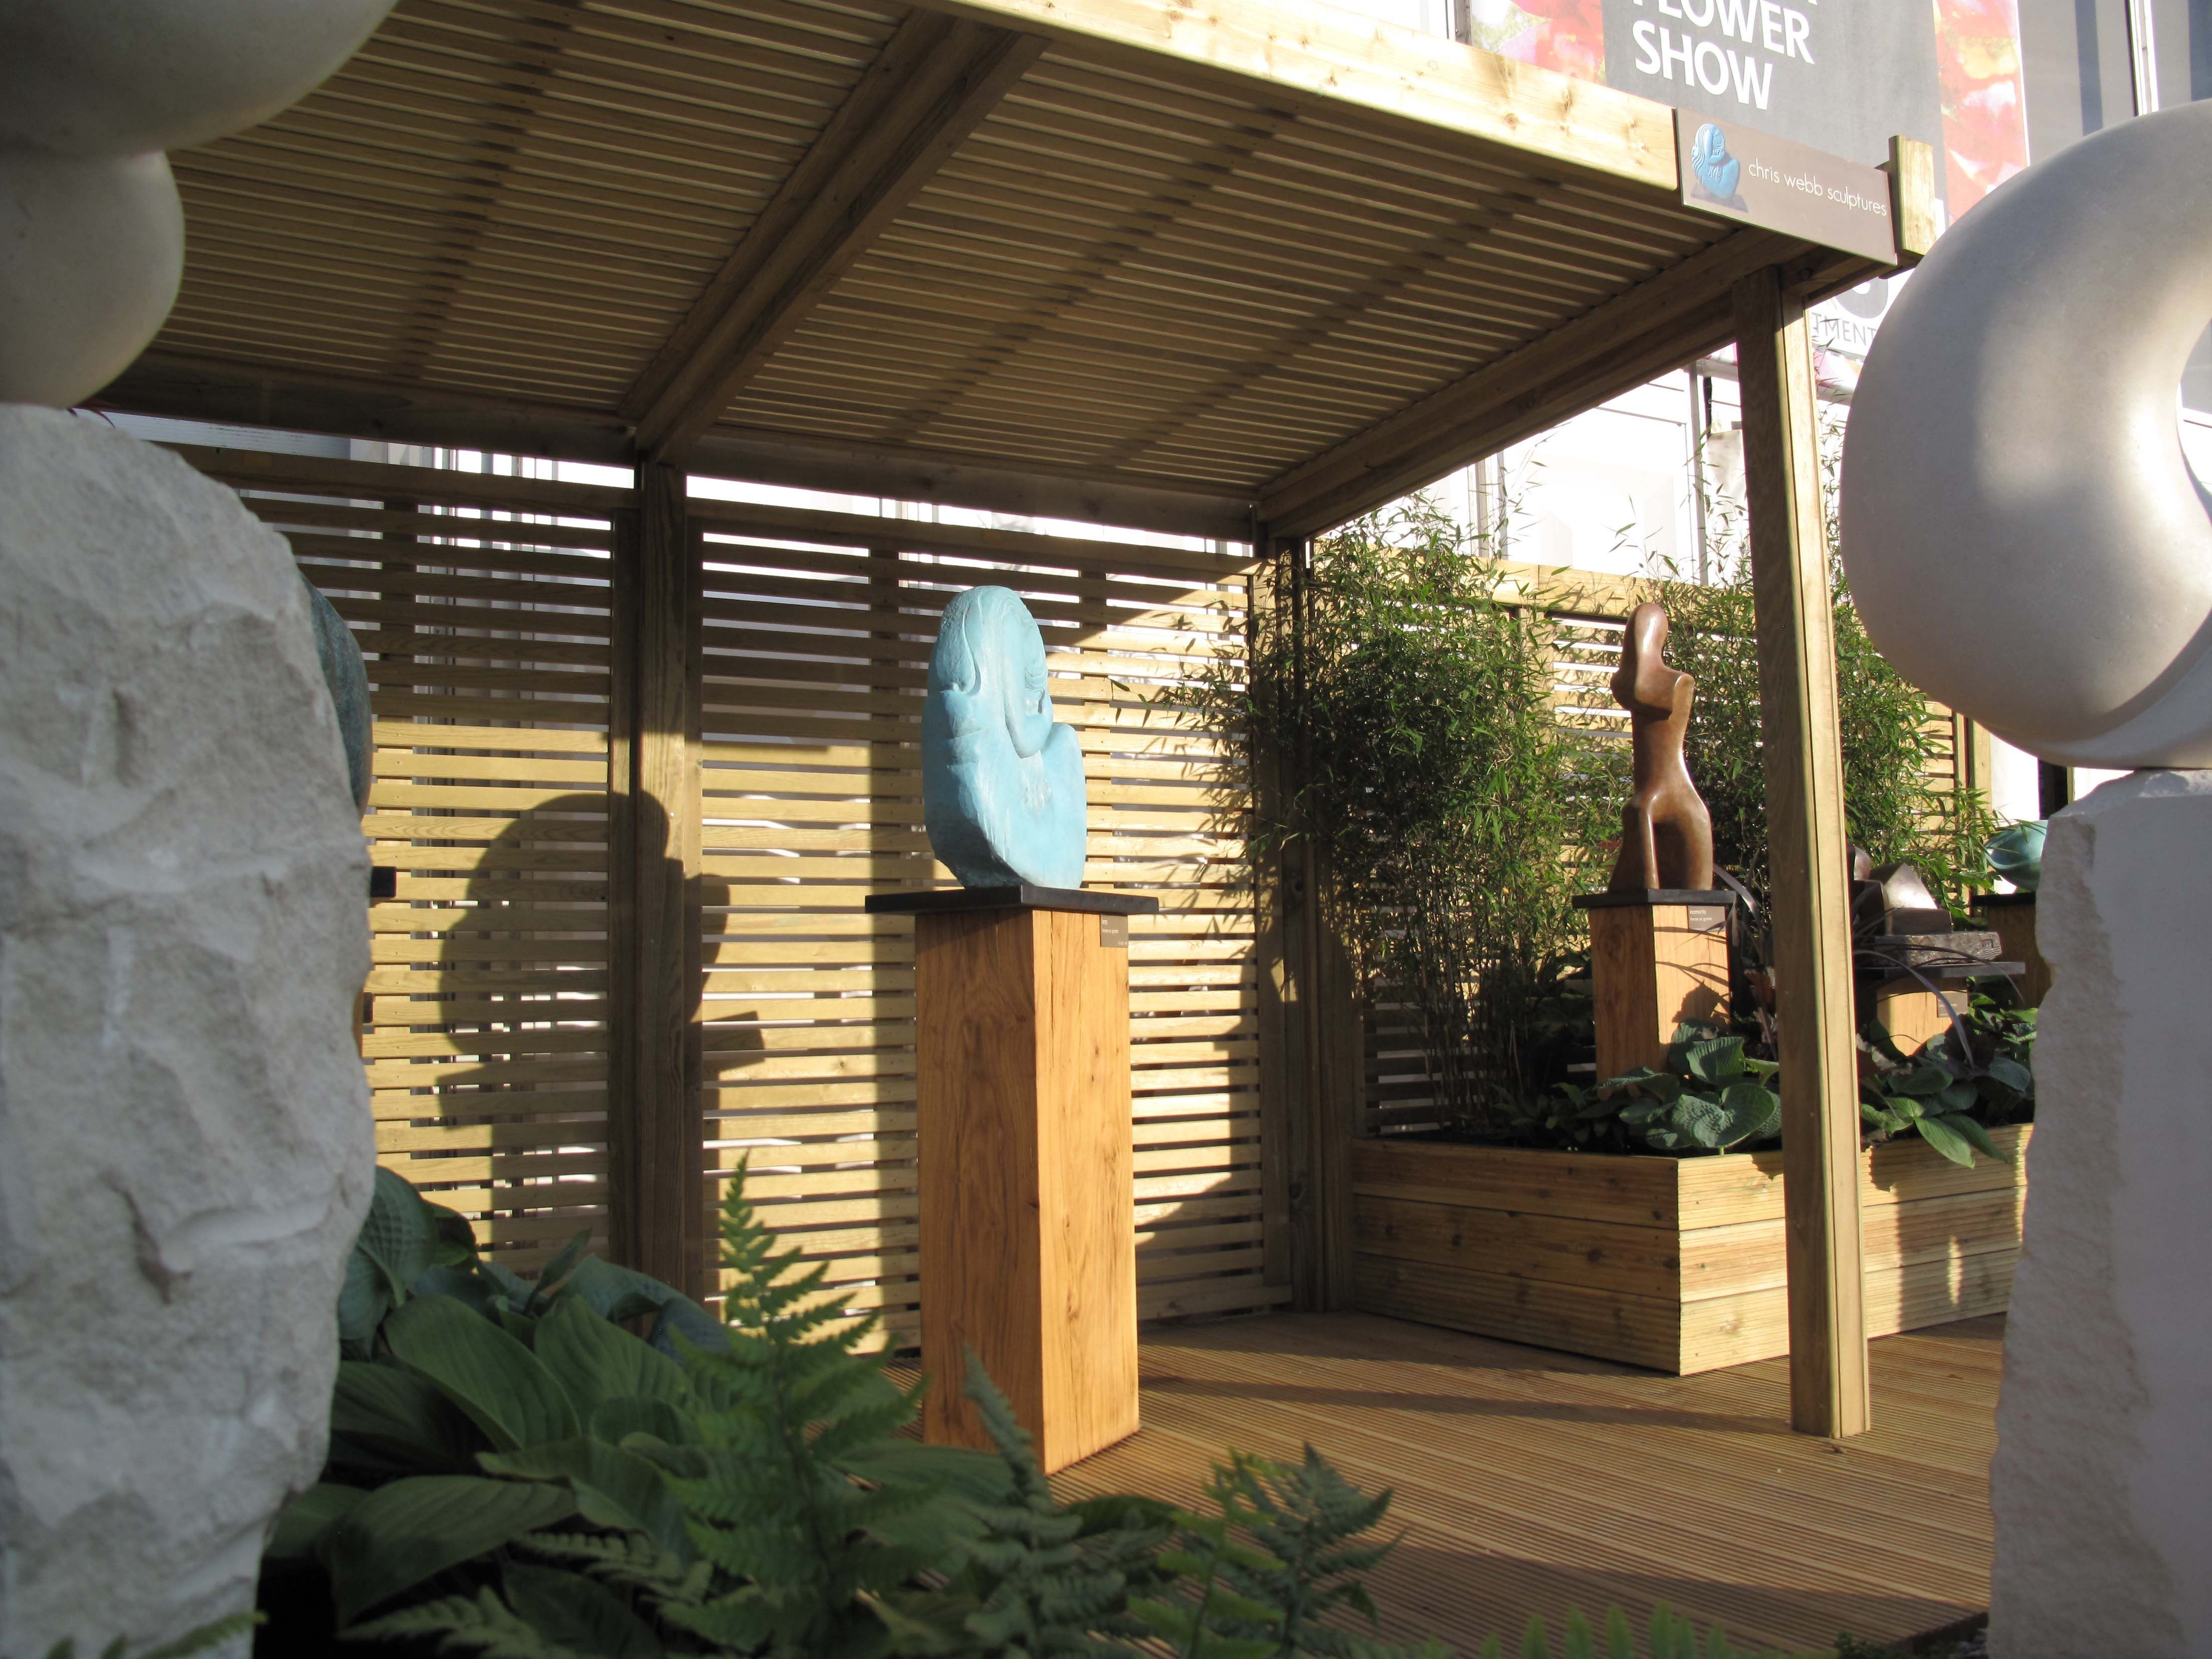 Garden Ideas 2014 Uk jacksons retreat shelter and venetian fence panels in chris webb's